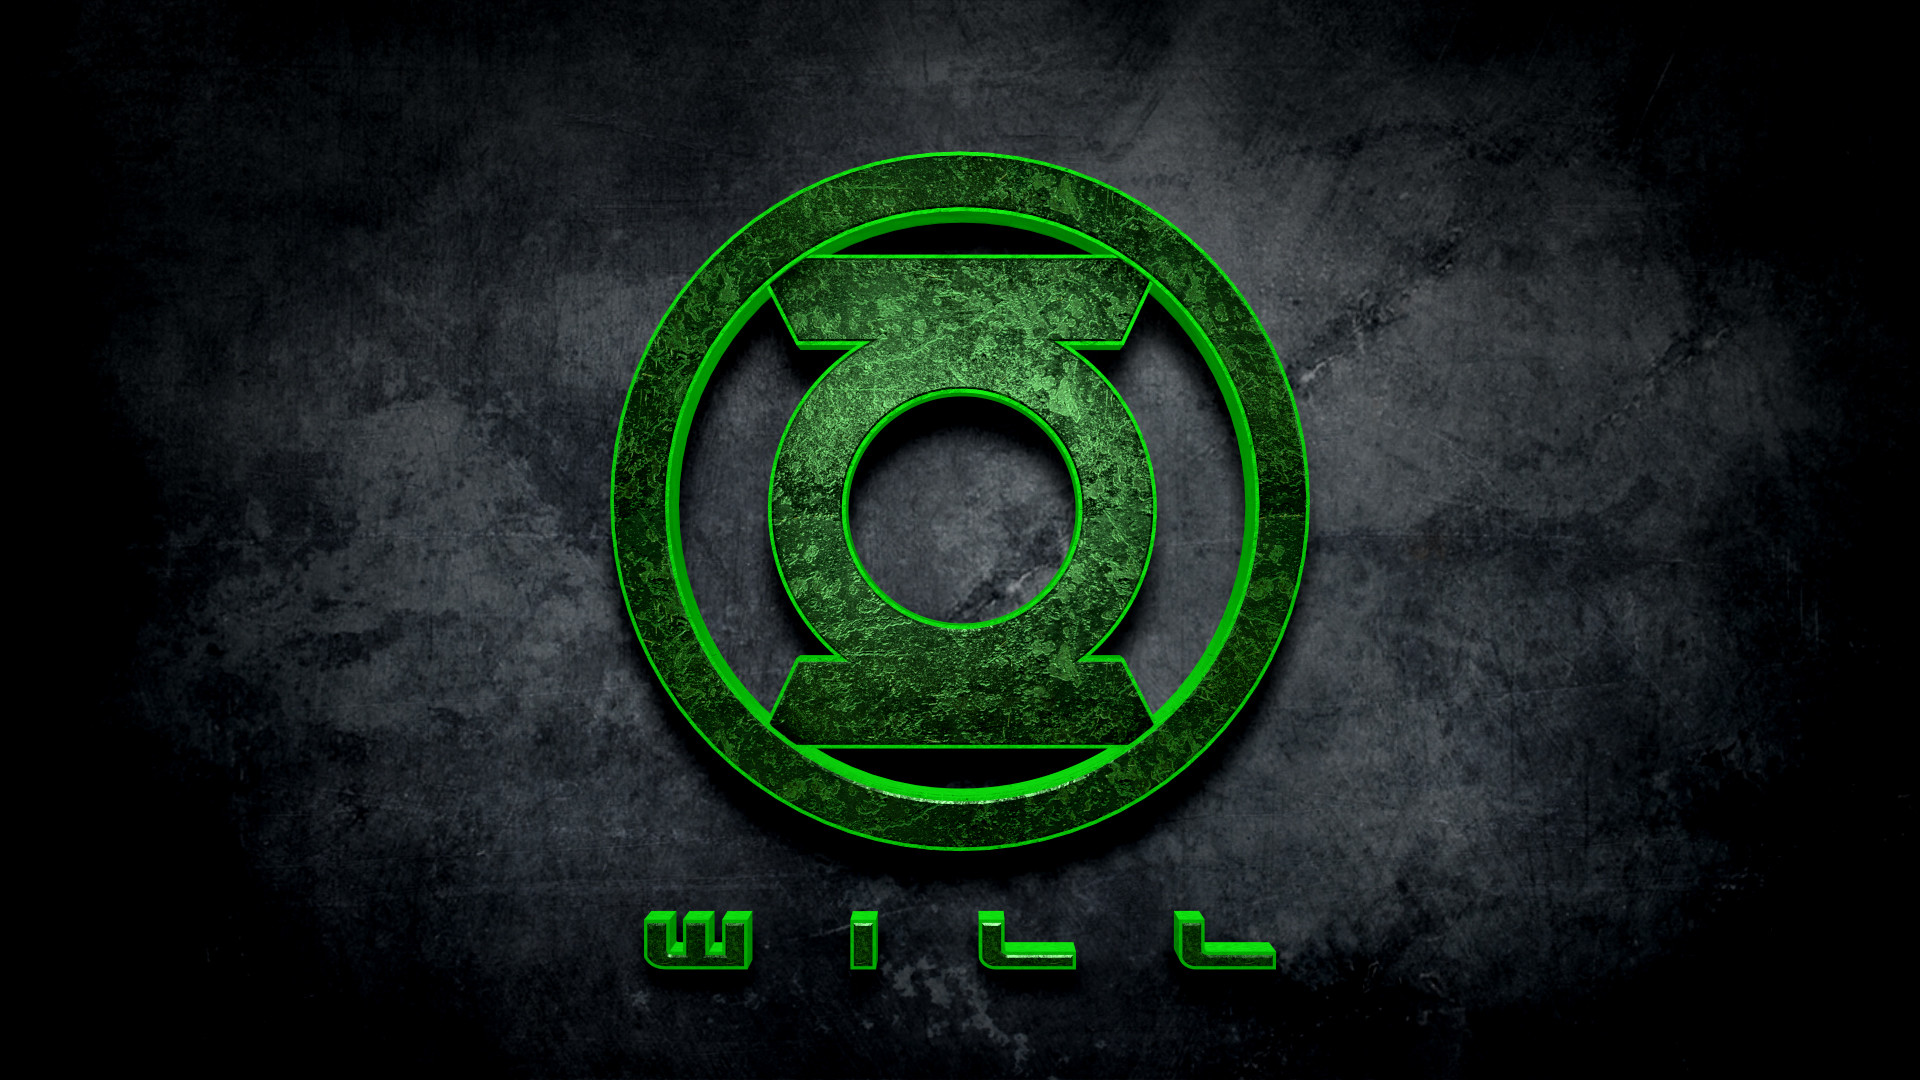 Green Lantern Oath Wallpaper (68+ images)